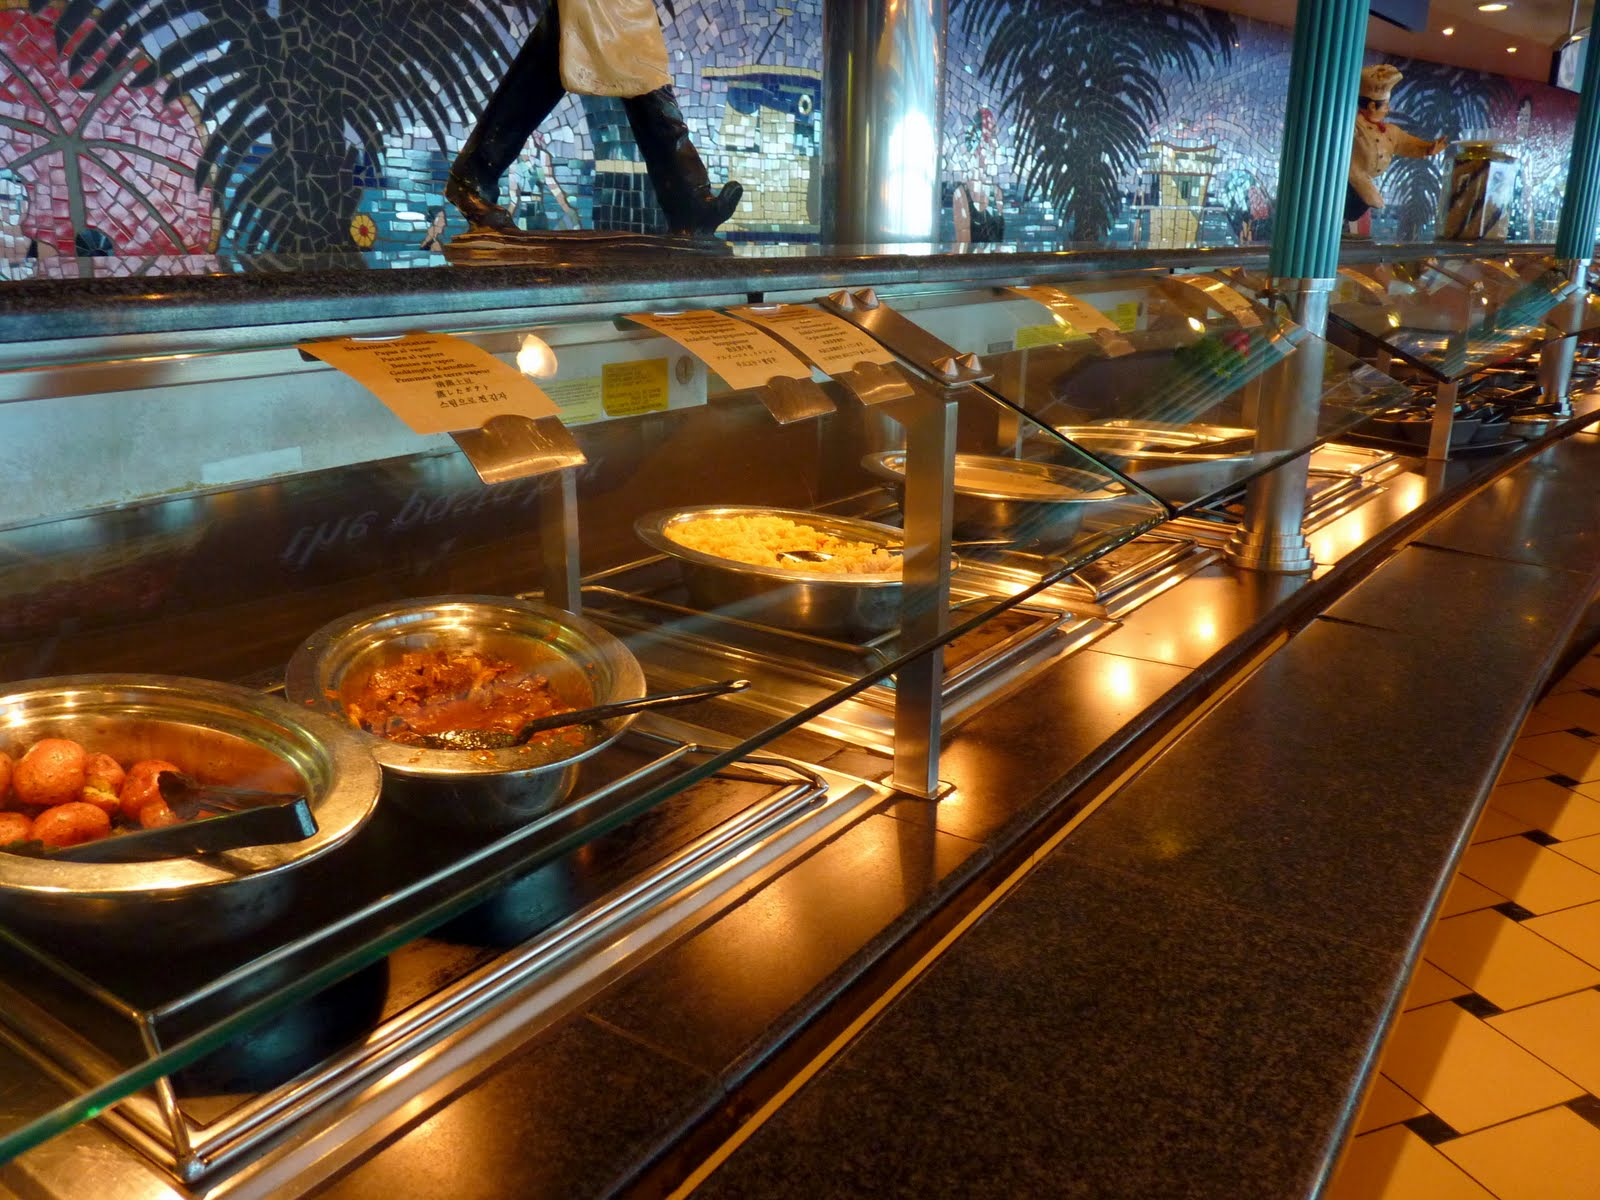 Disney Cruise Line Buffet Cruise Line Buffet Food